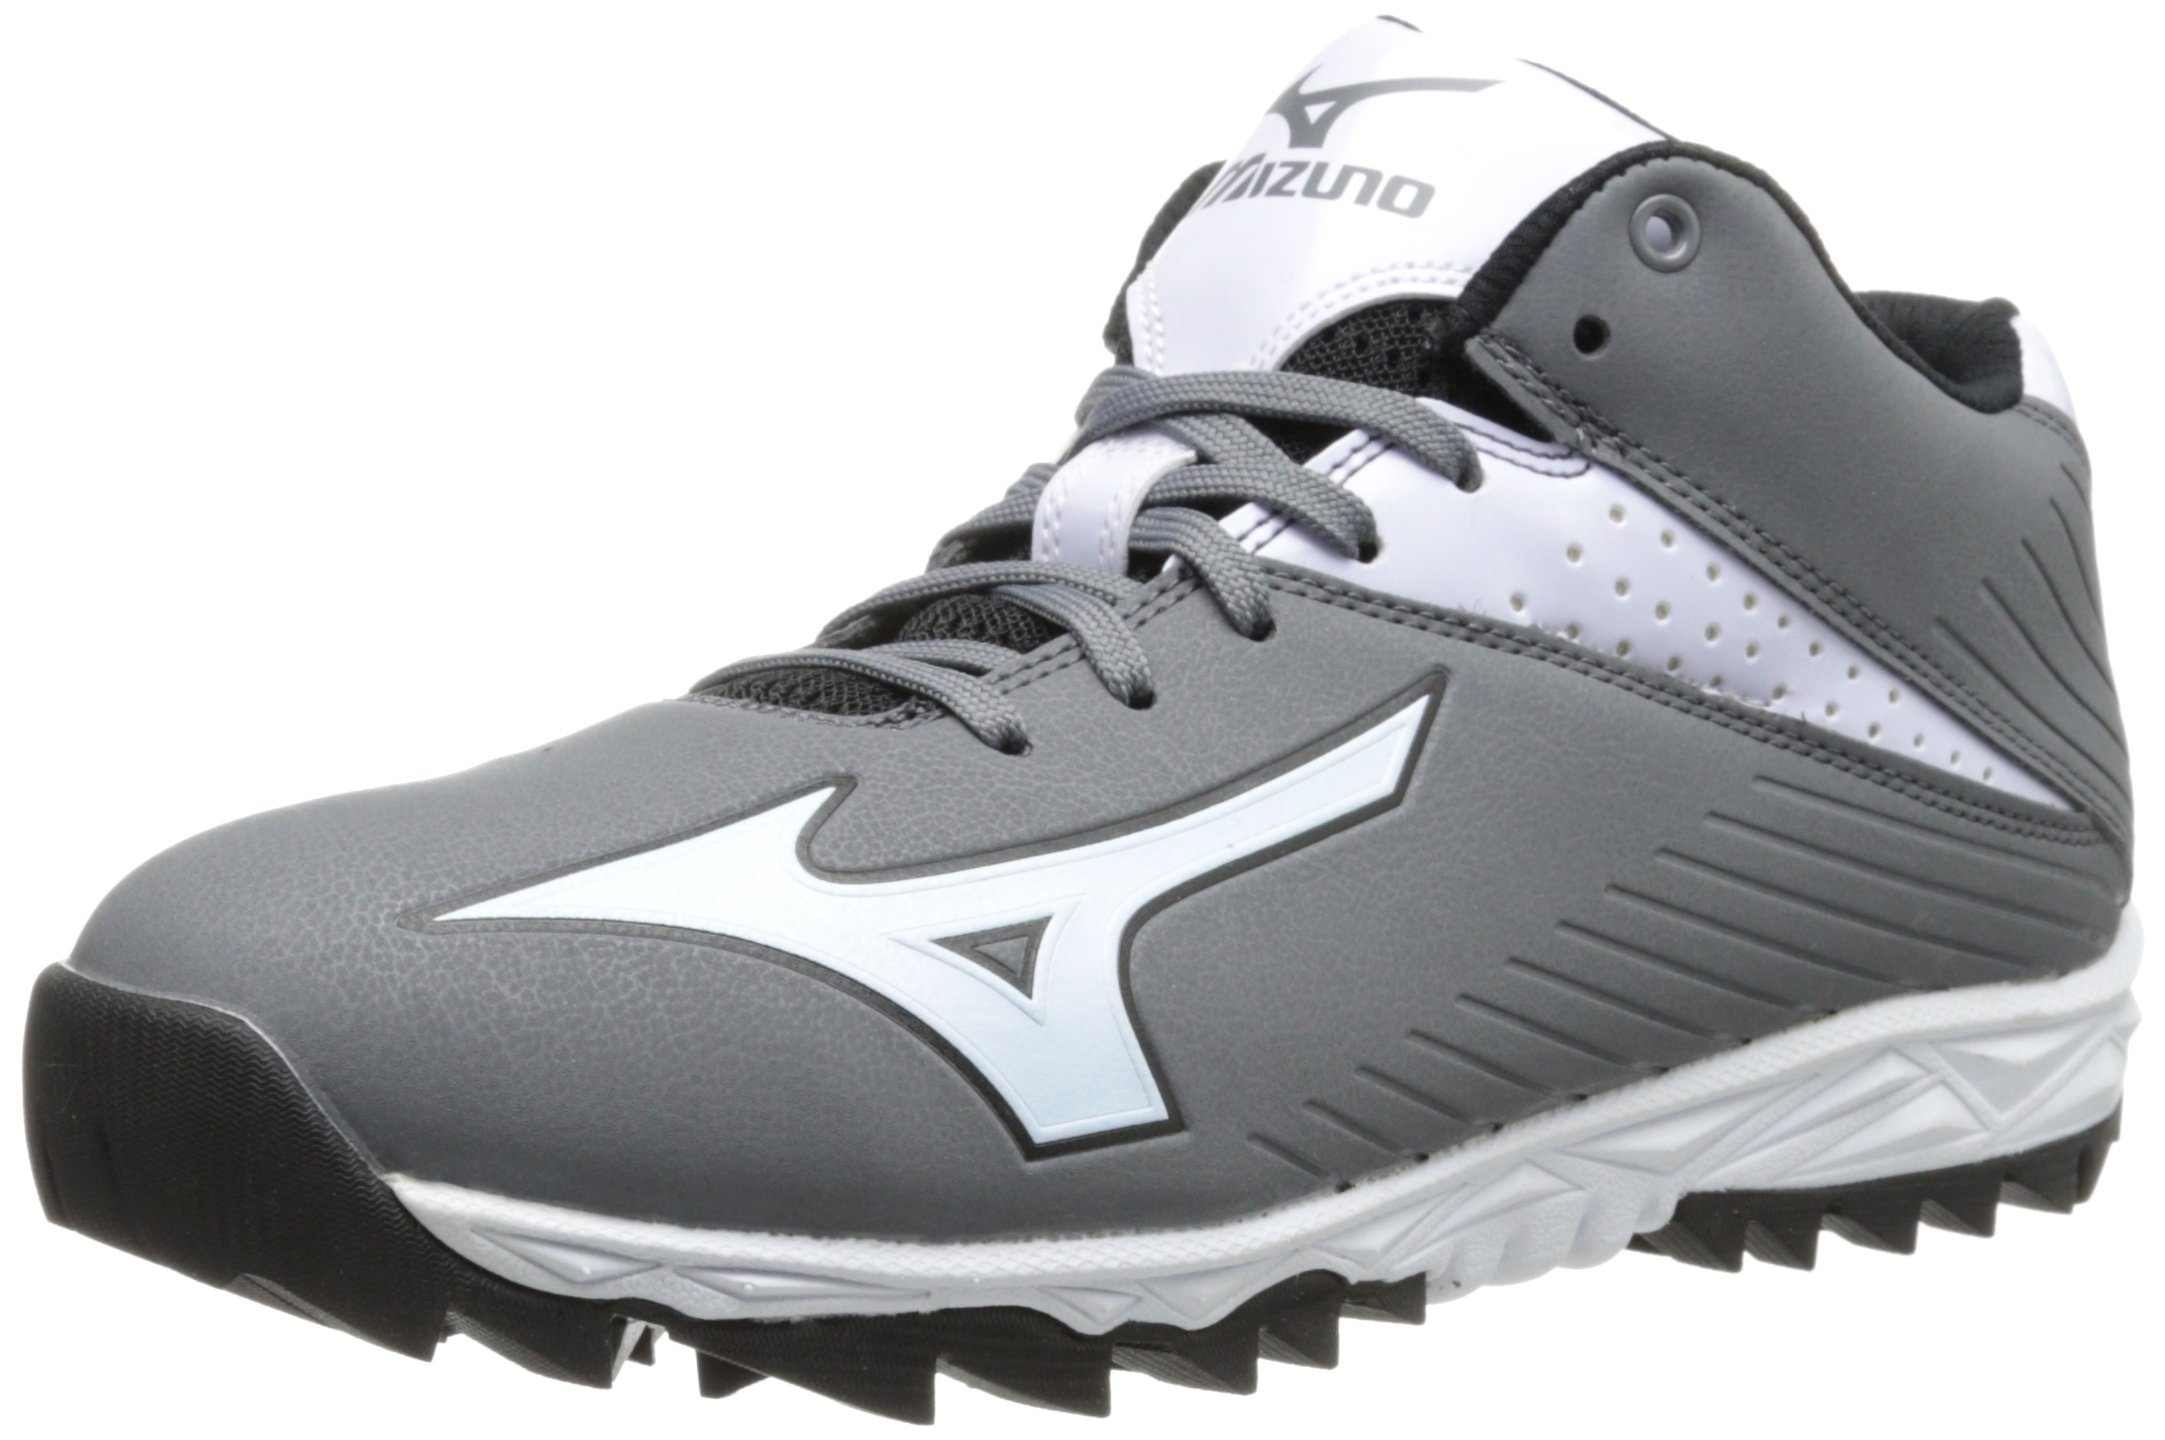 Mizuno Men's Jawz Blast 4 Baseball Cleat